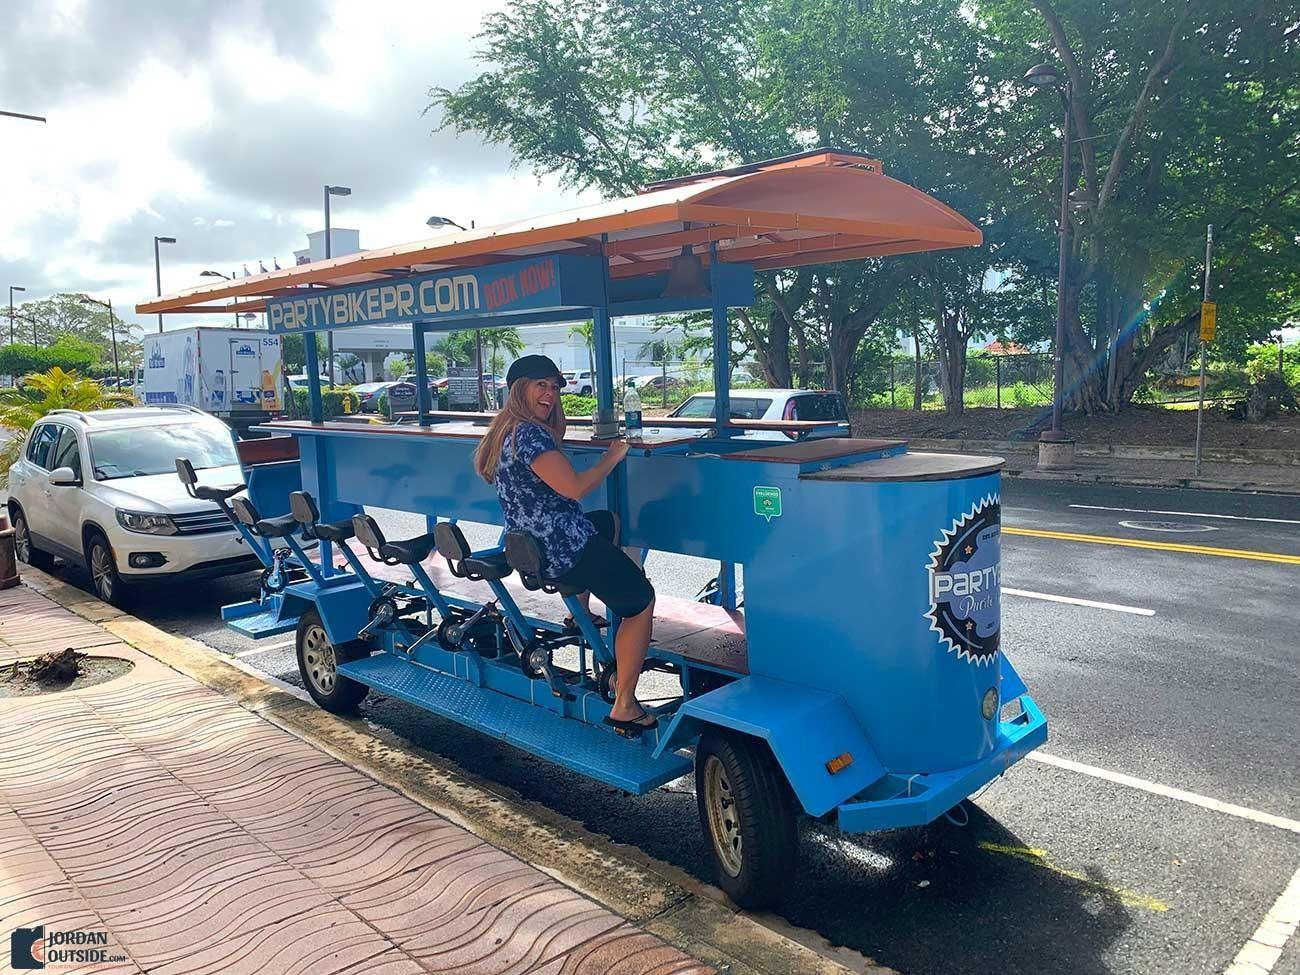 Party Bike in Puerto Rico